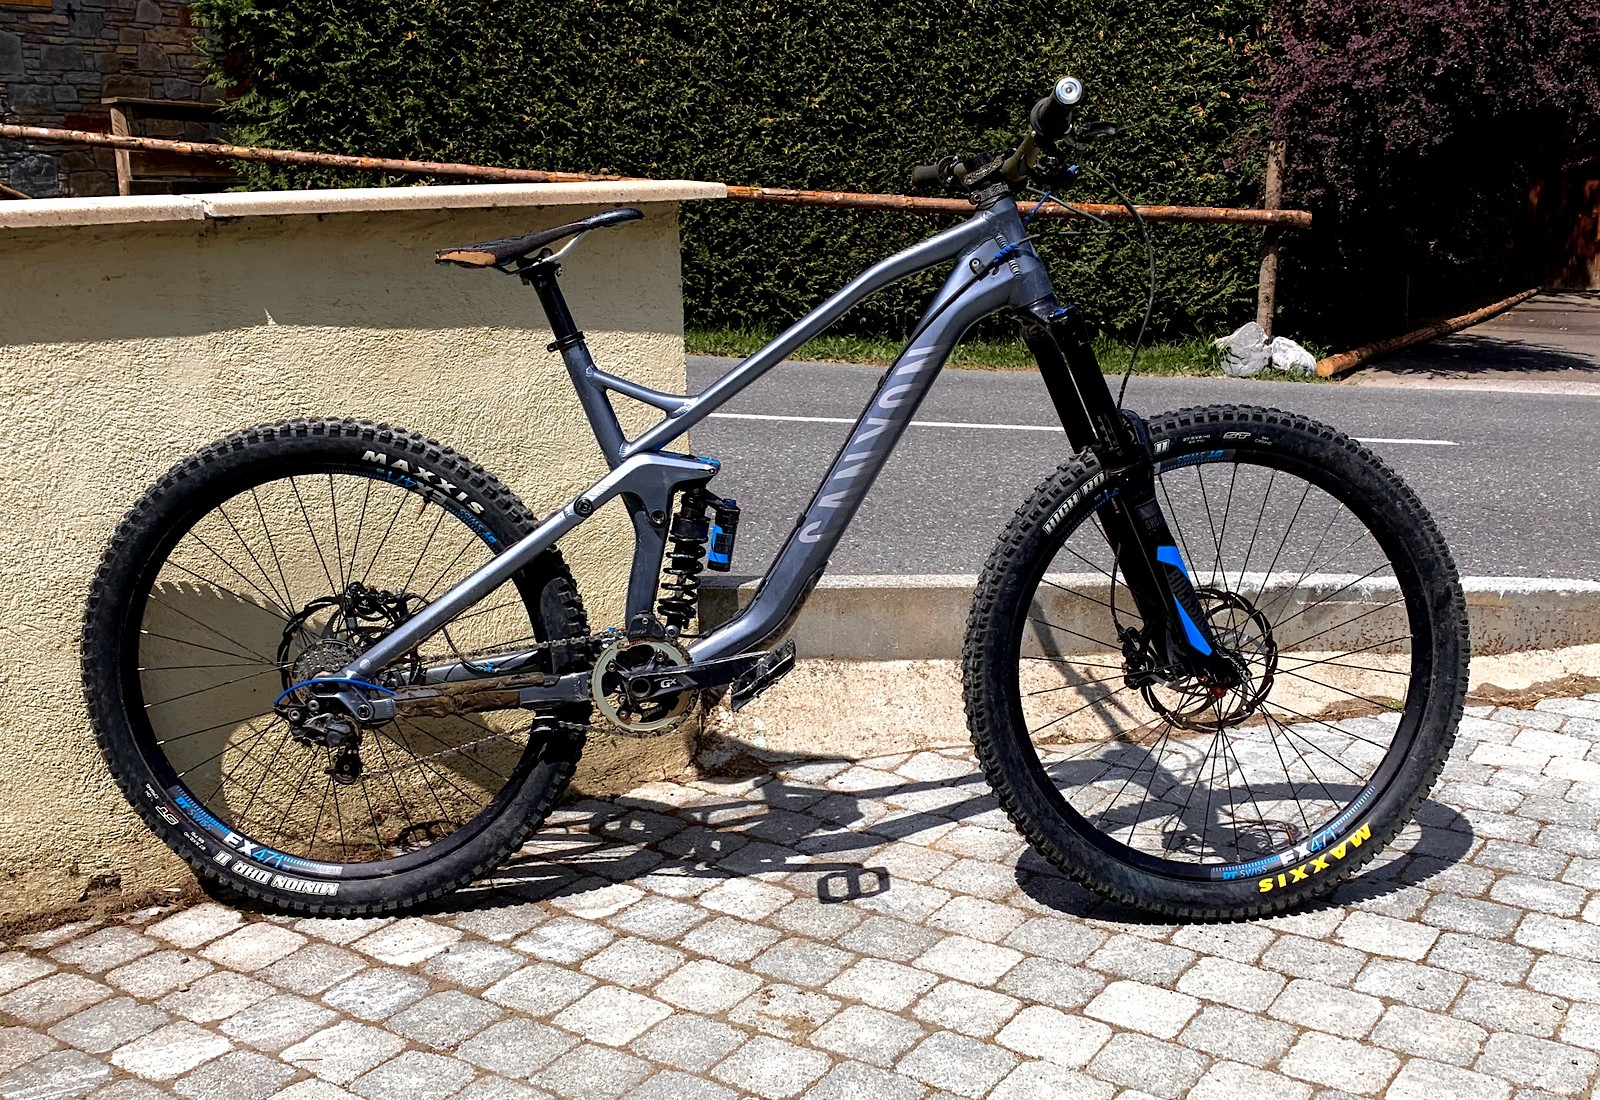 Morzine 2019  Coil Fork DT 240/EX471 Build 36t chainring to reduce pedal kickback from anti squat.